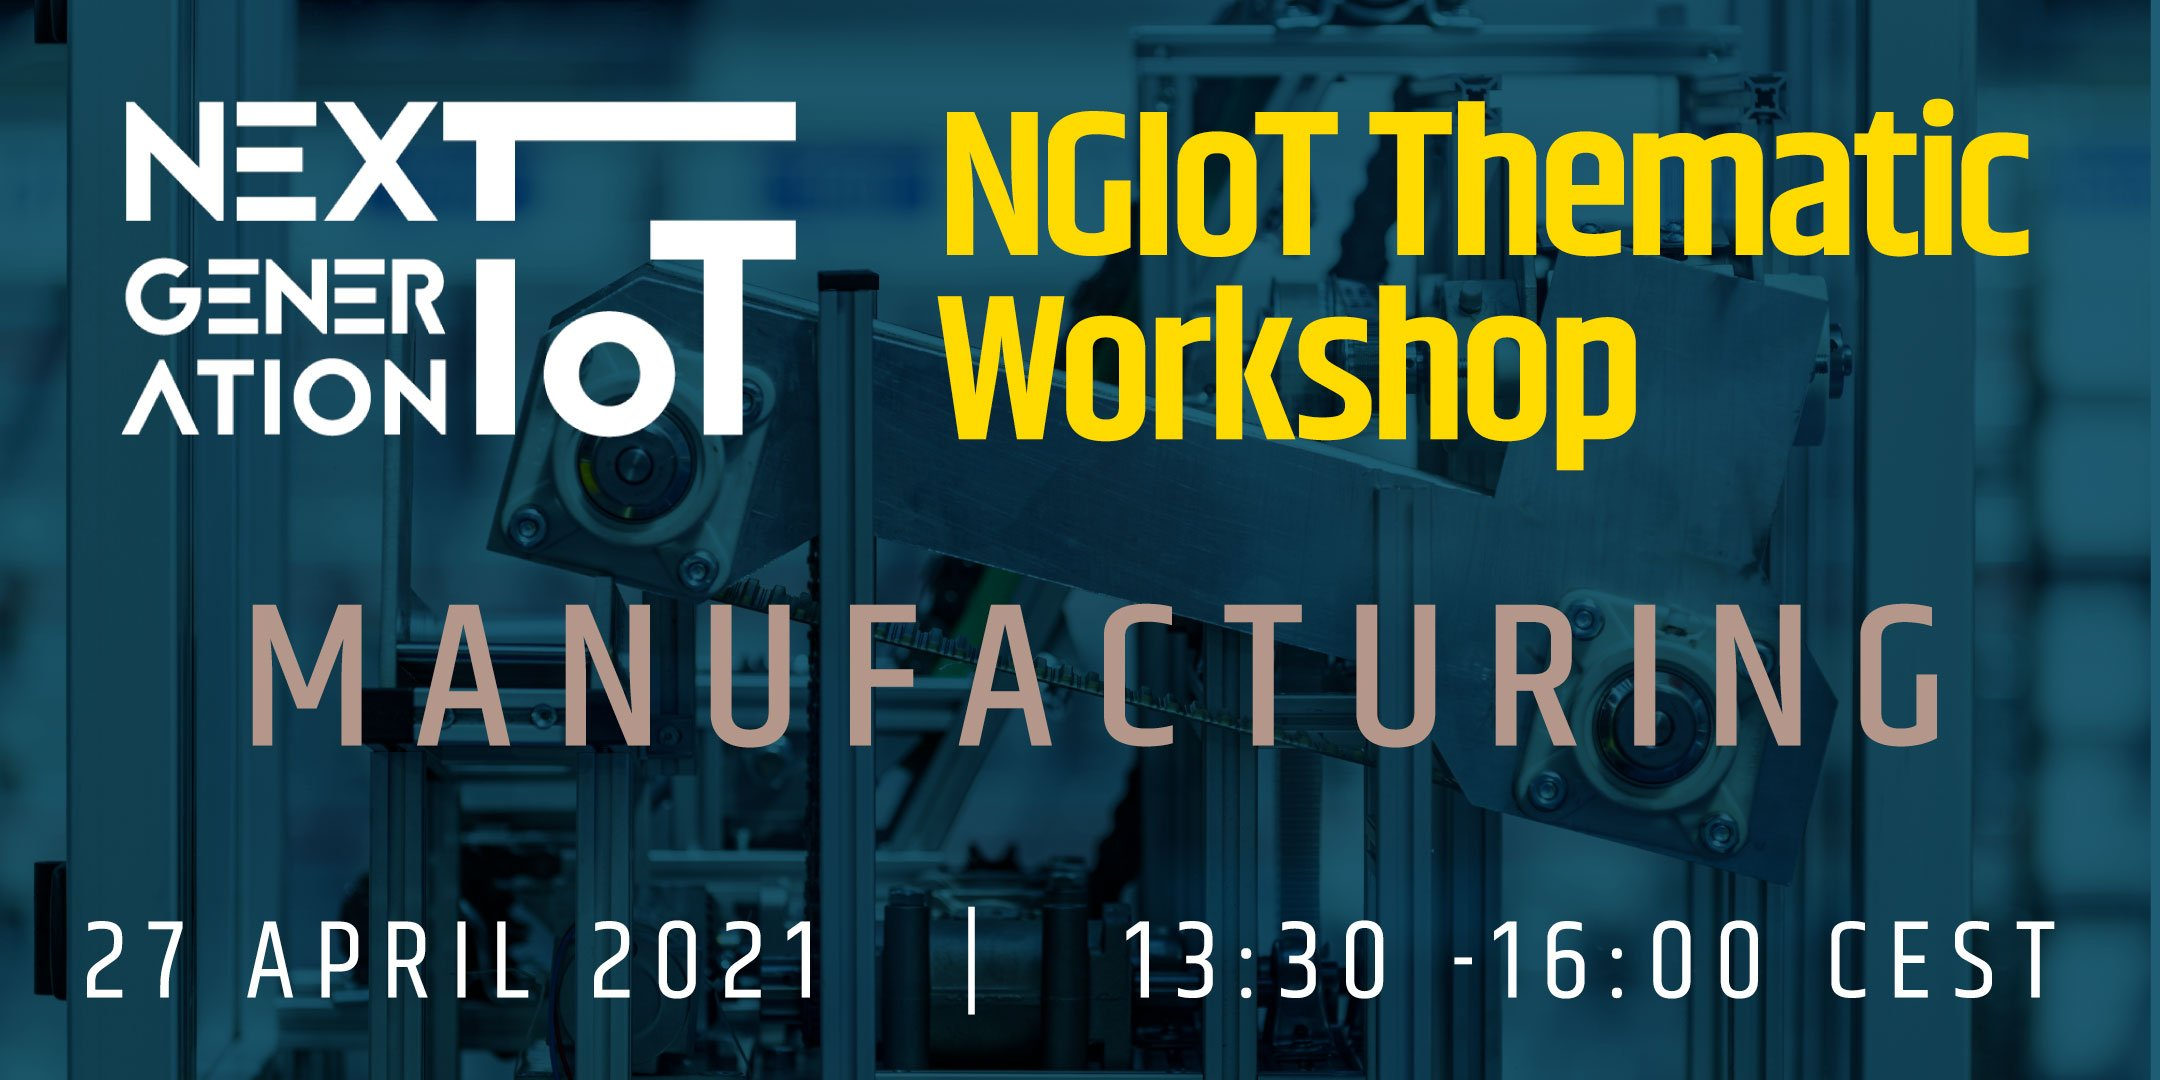 NGIoT Thematic Workshop: Manufacturing @ Online